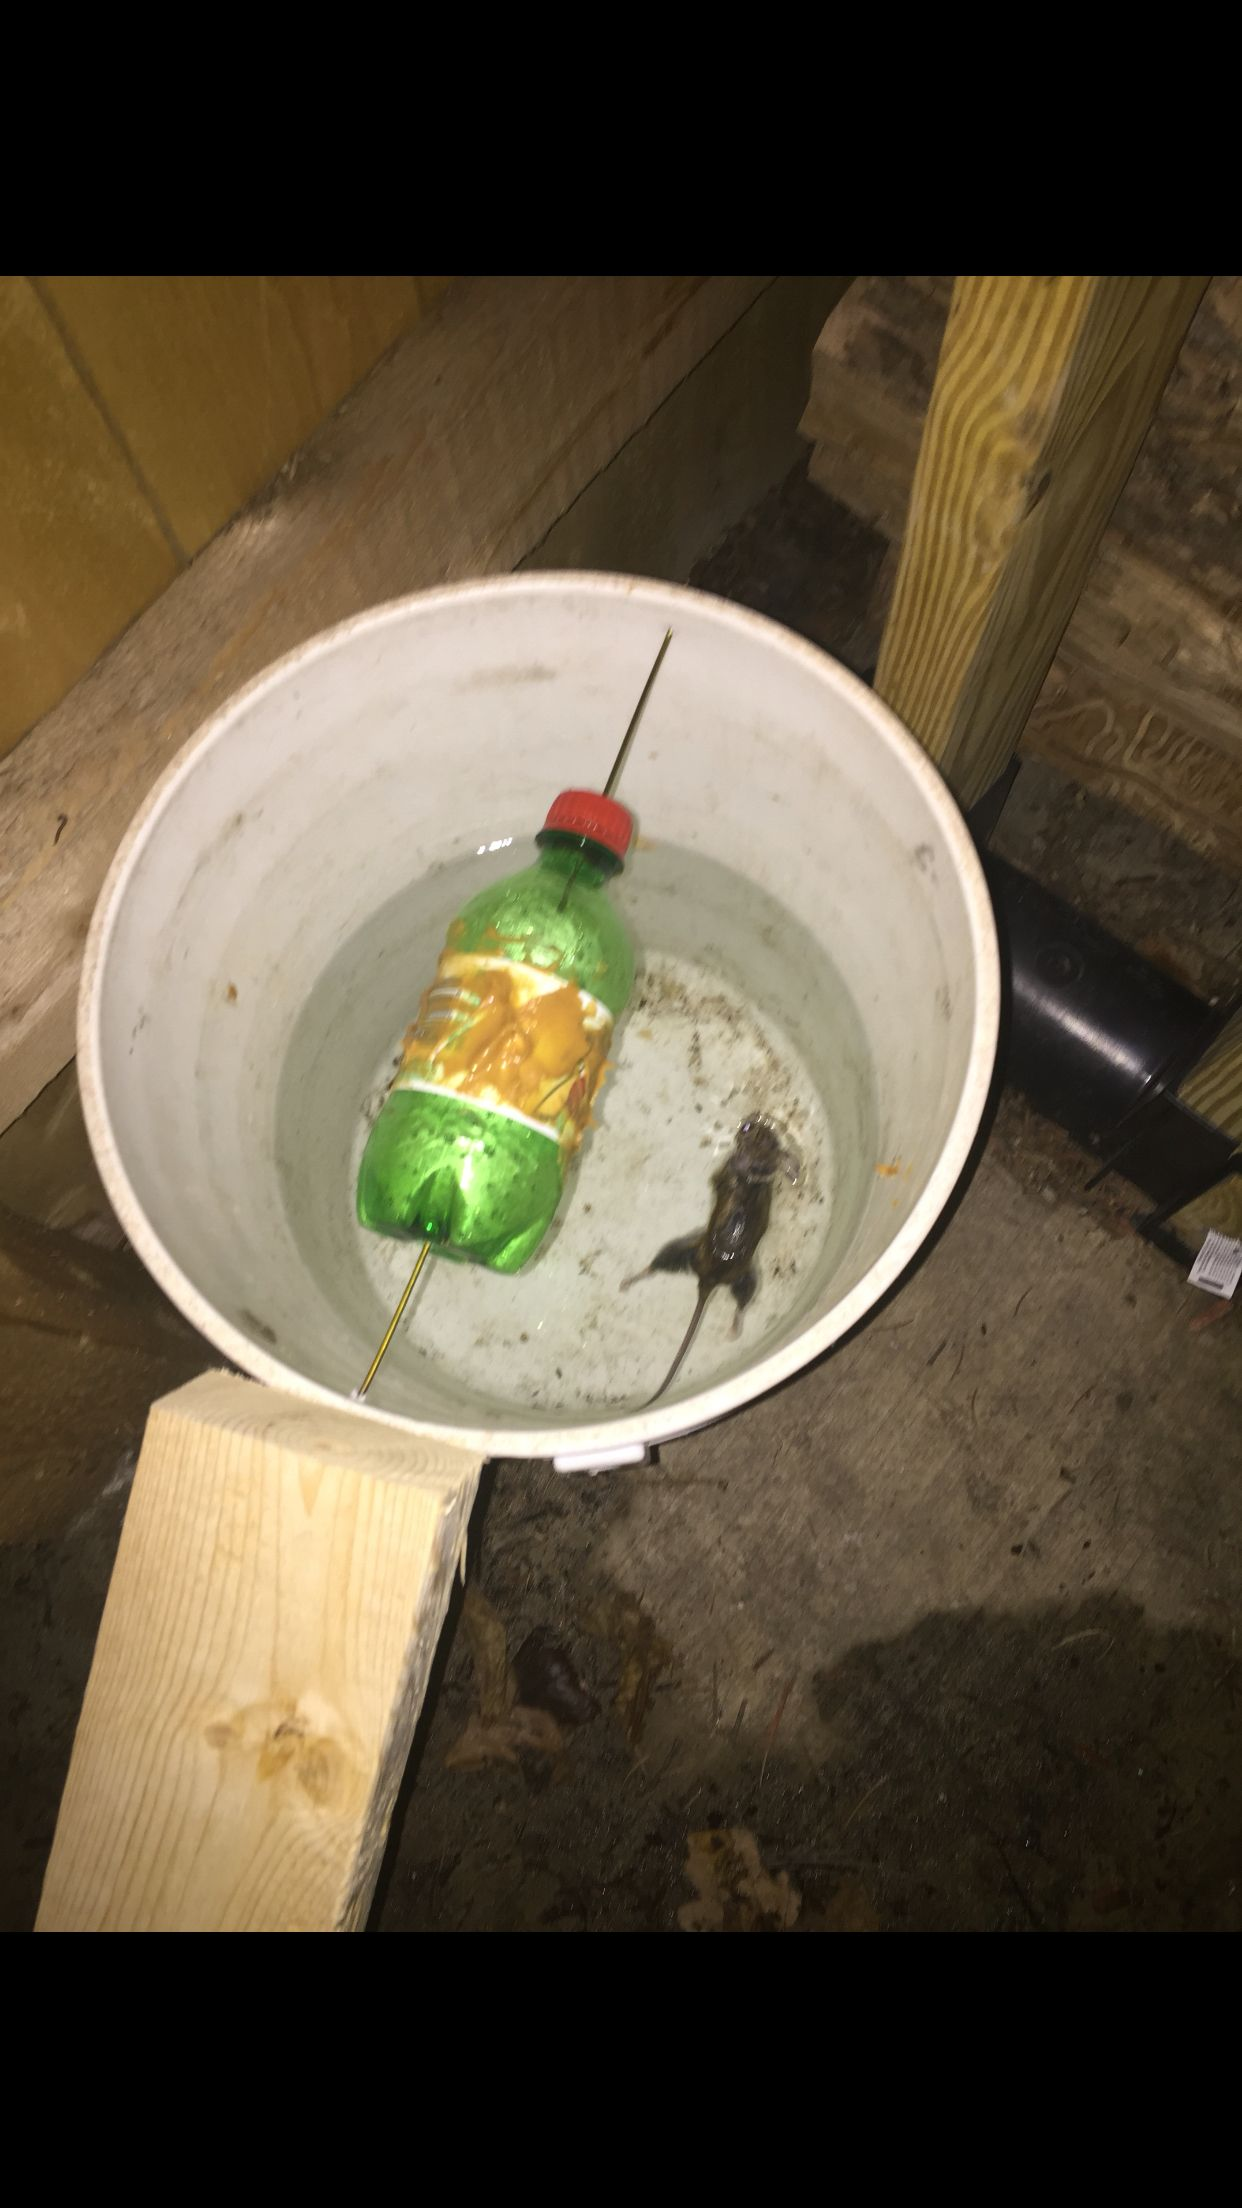 Got the first rat trapped 31216 bucket mouse trap rat